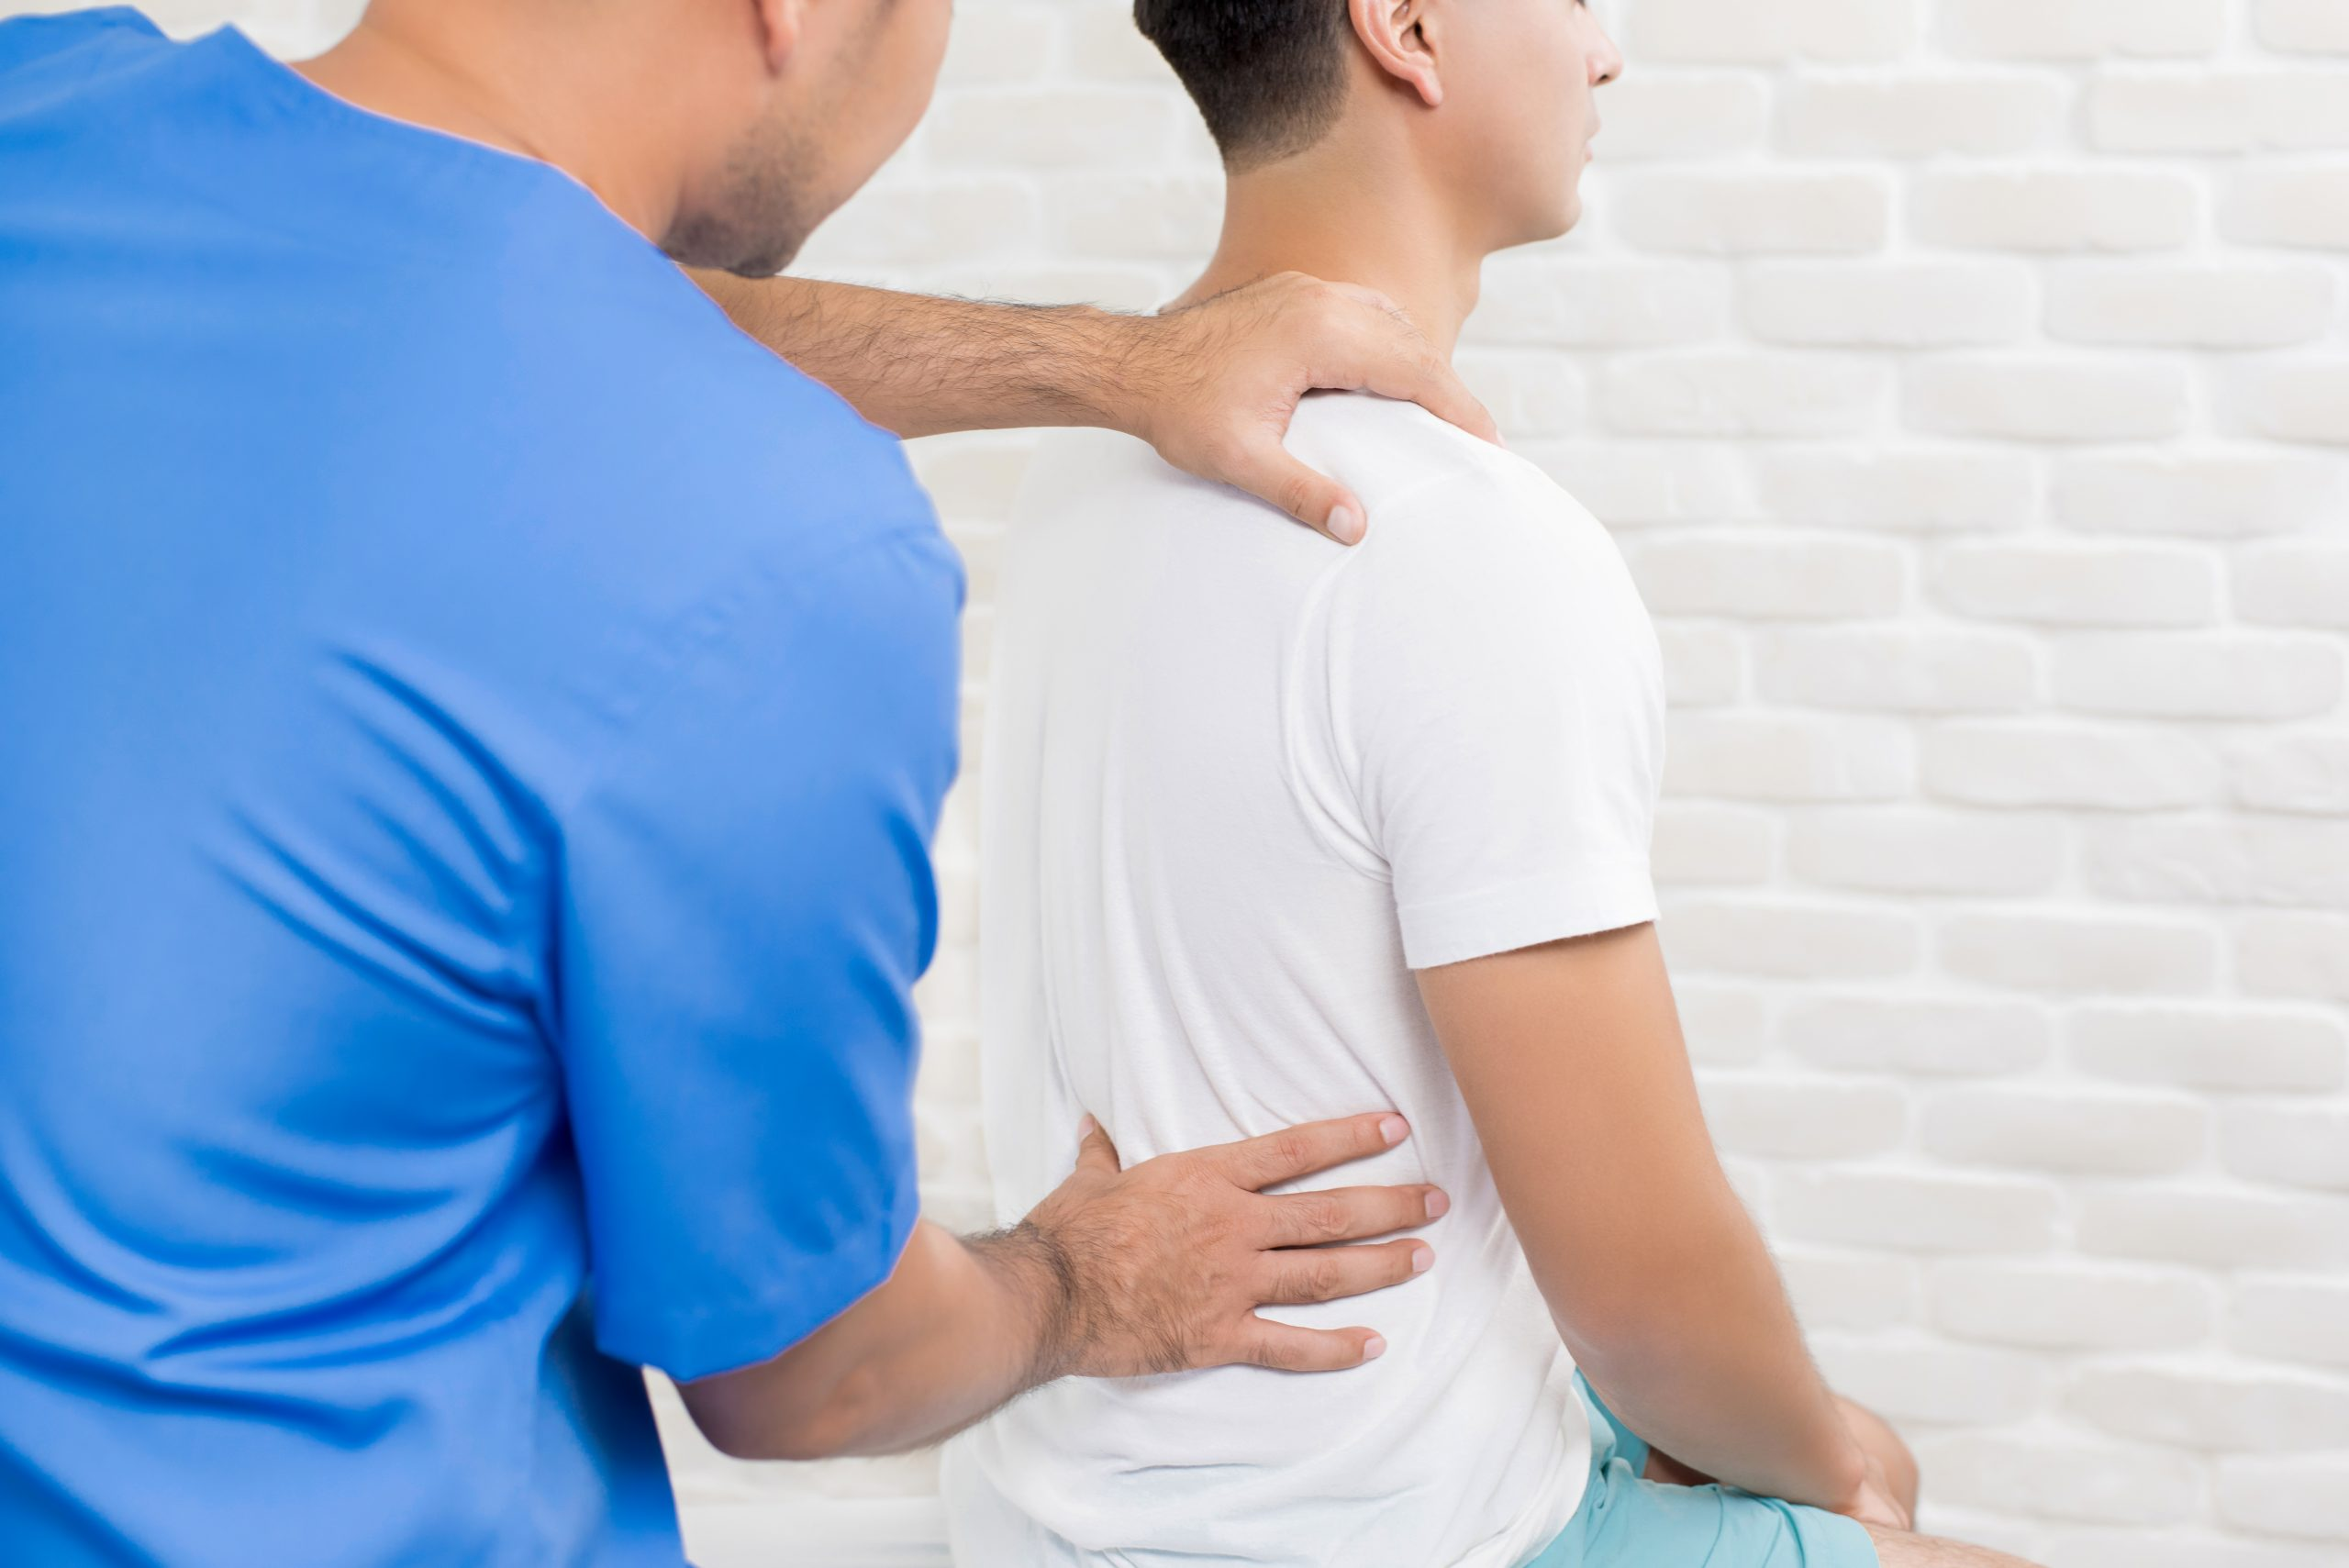 Male doctor therapist treating lower back pain patient in clinic or hospital